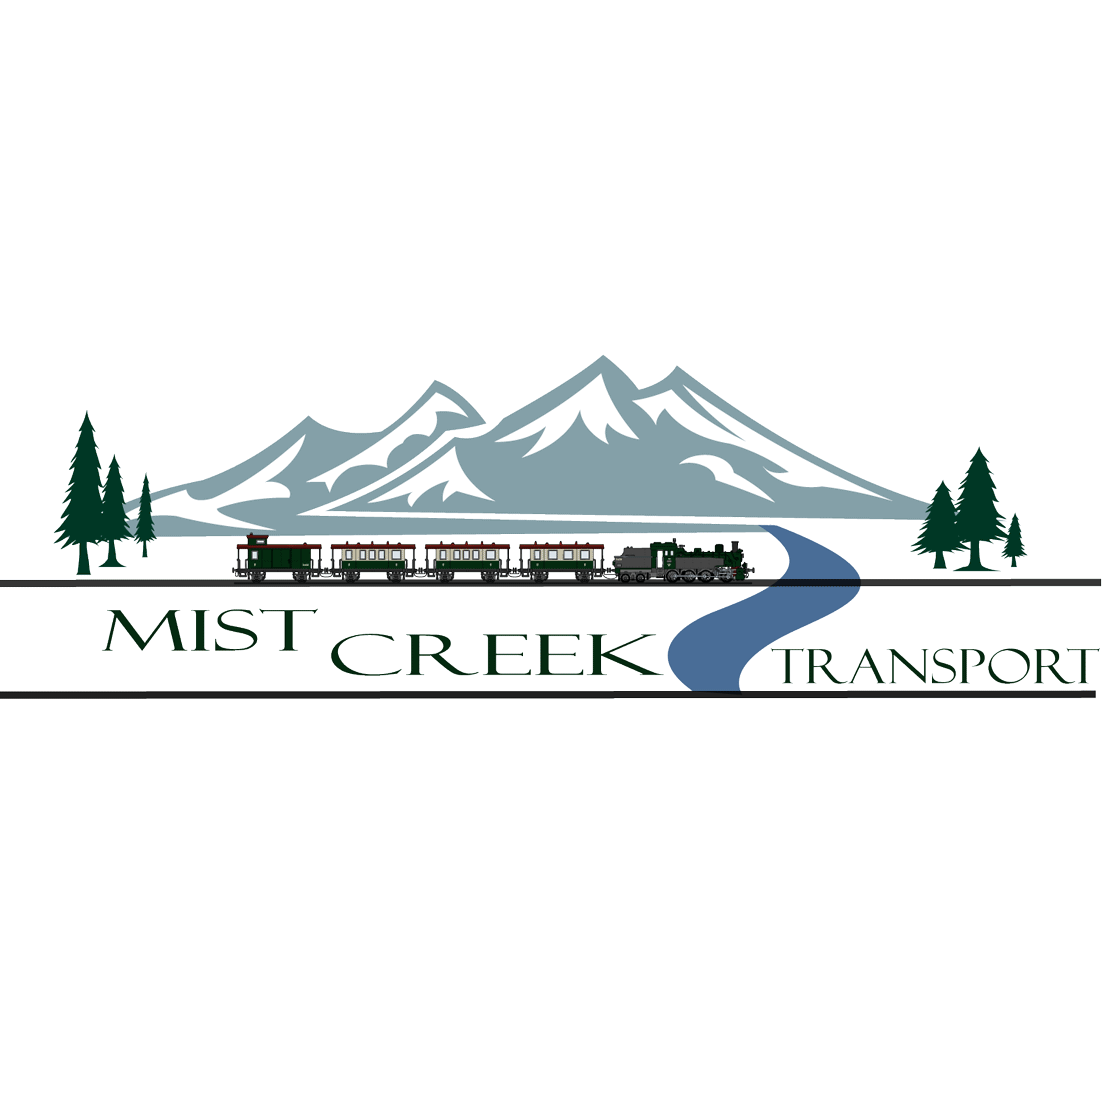 Mist Creek Transport